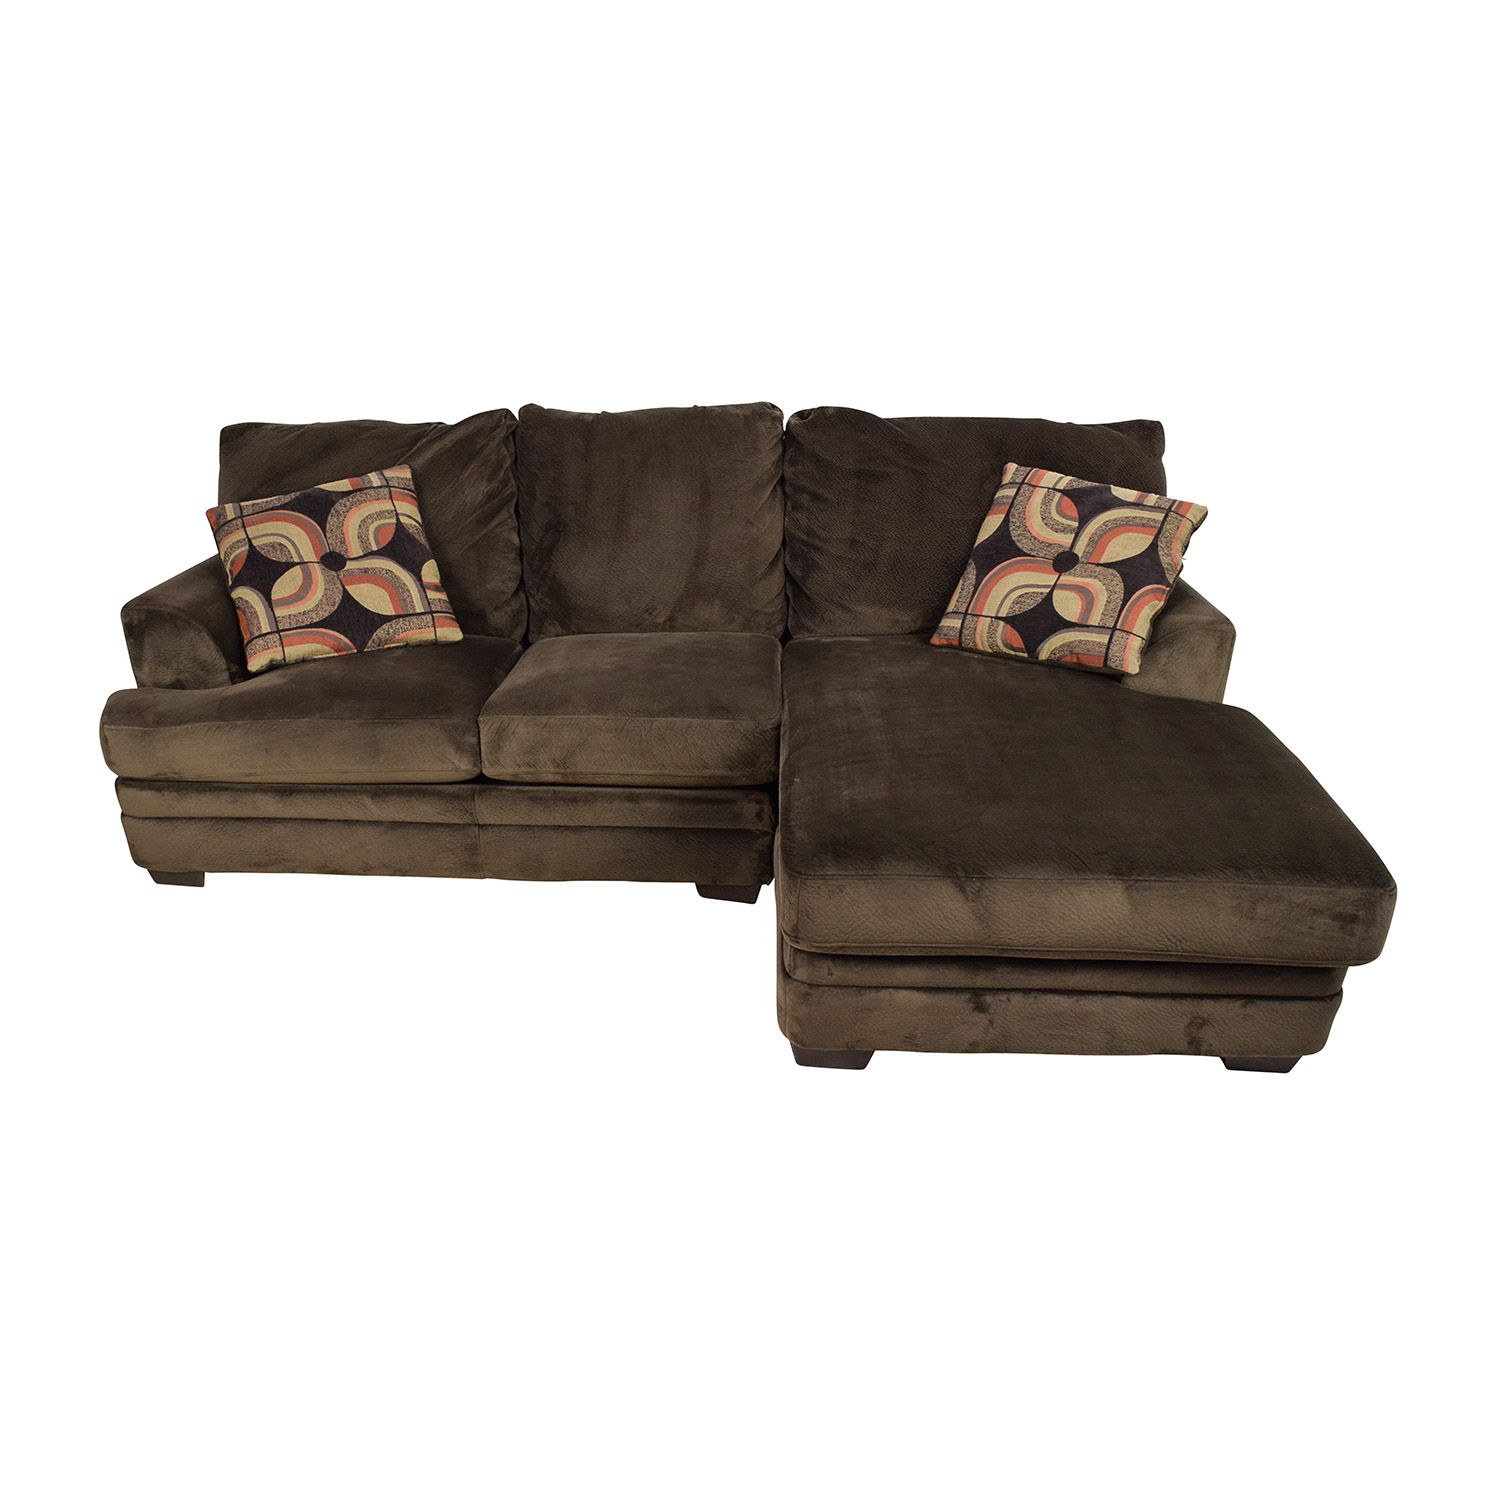 Bobs Furniture Bobs Furniture Charisma Sectional Sofa Brown